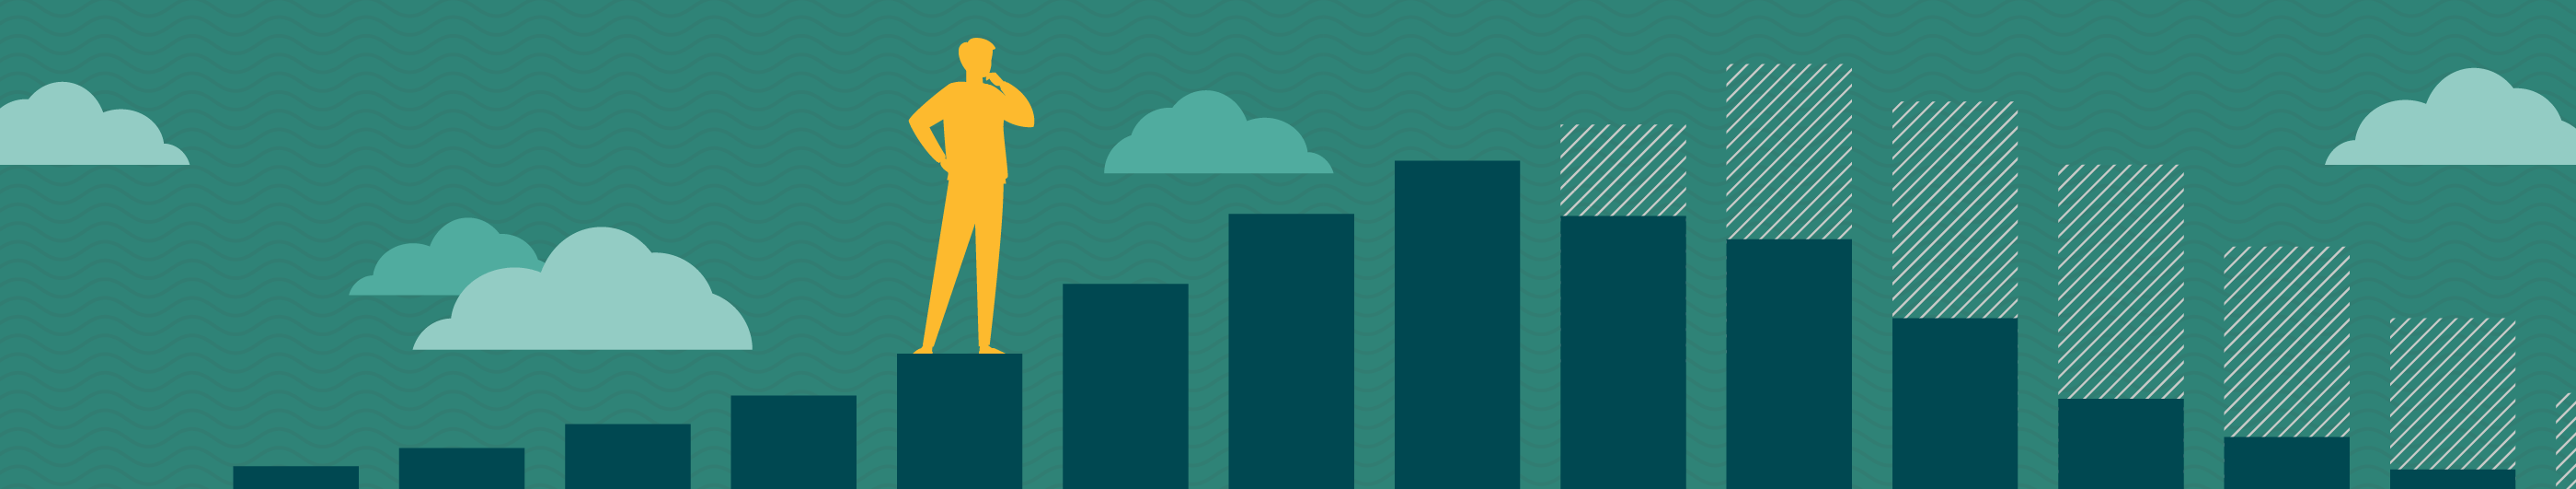 illustration of yellow man on a bar chart with clouds in background